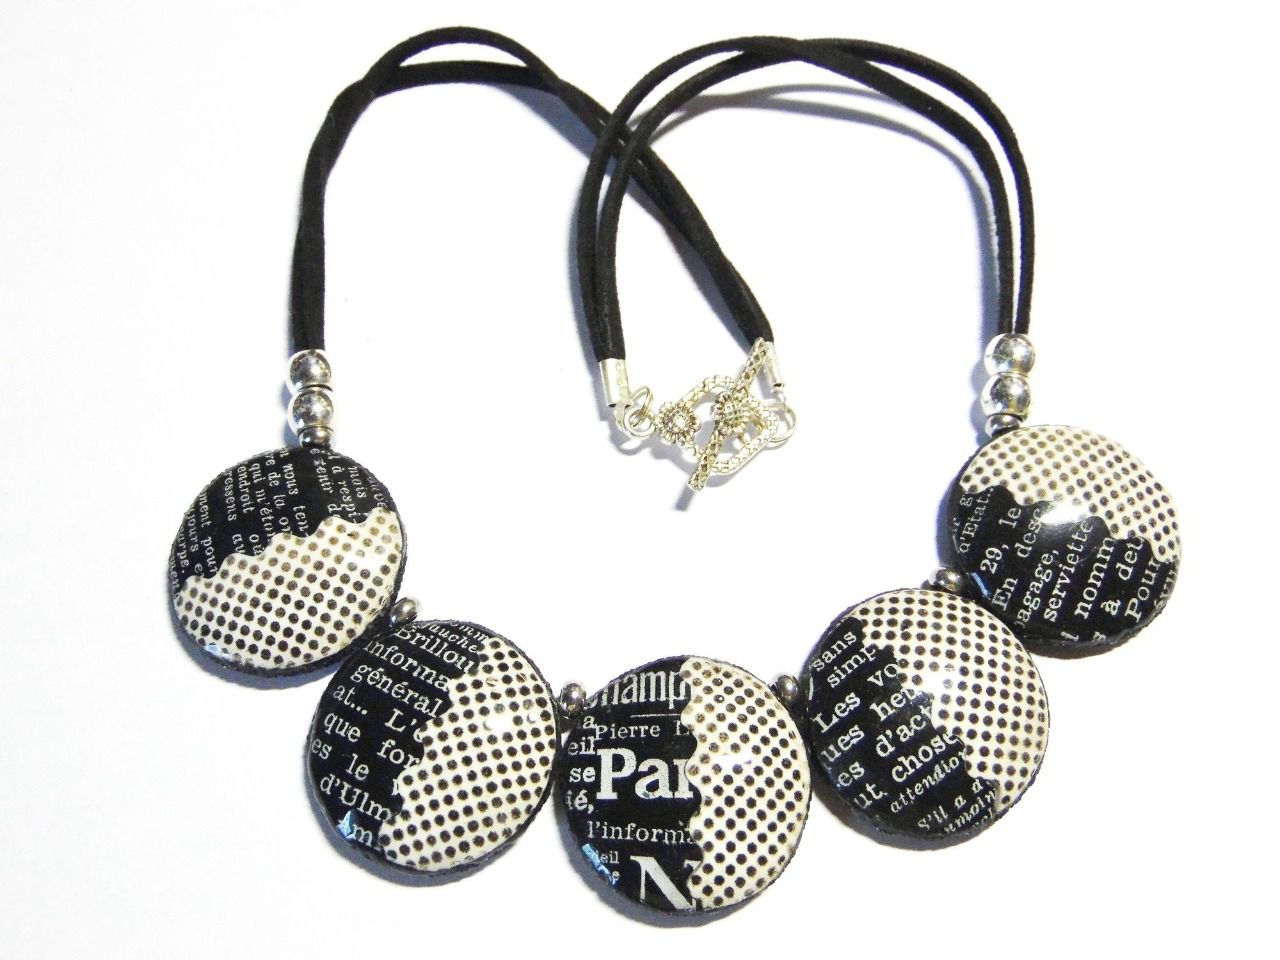 Collier moderne contemporain ronds motif pois et journal blanc et noir